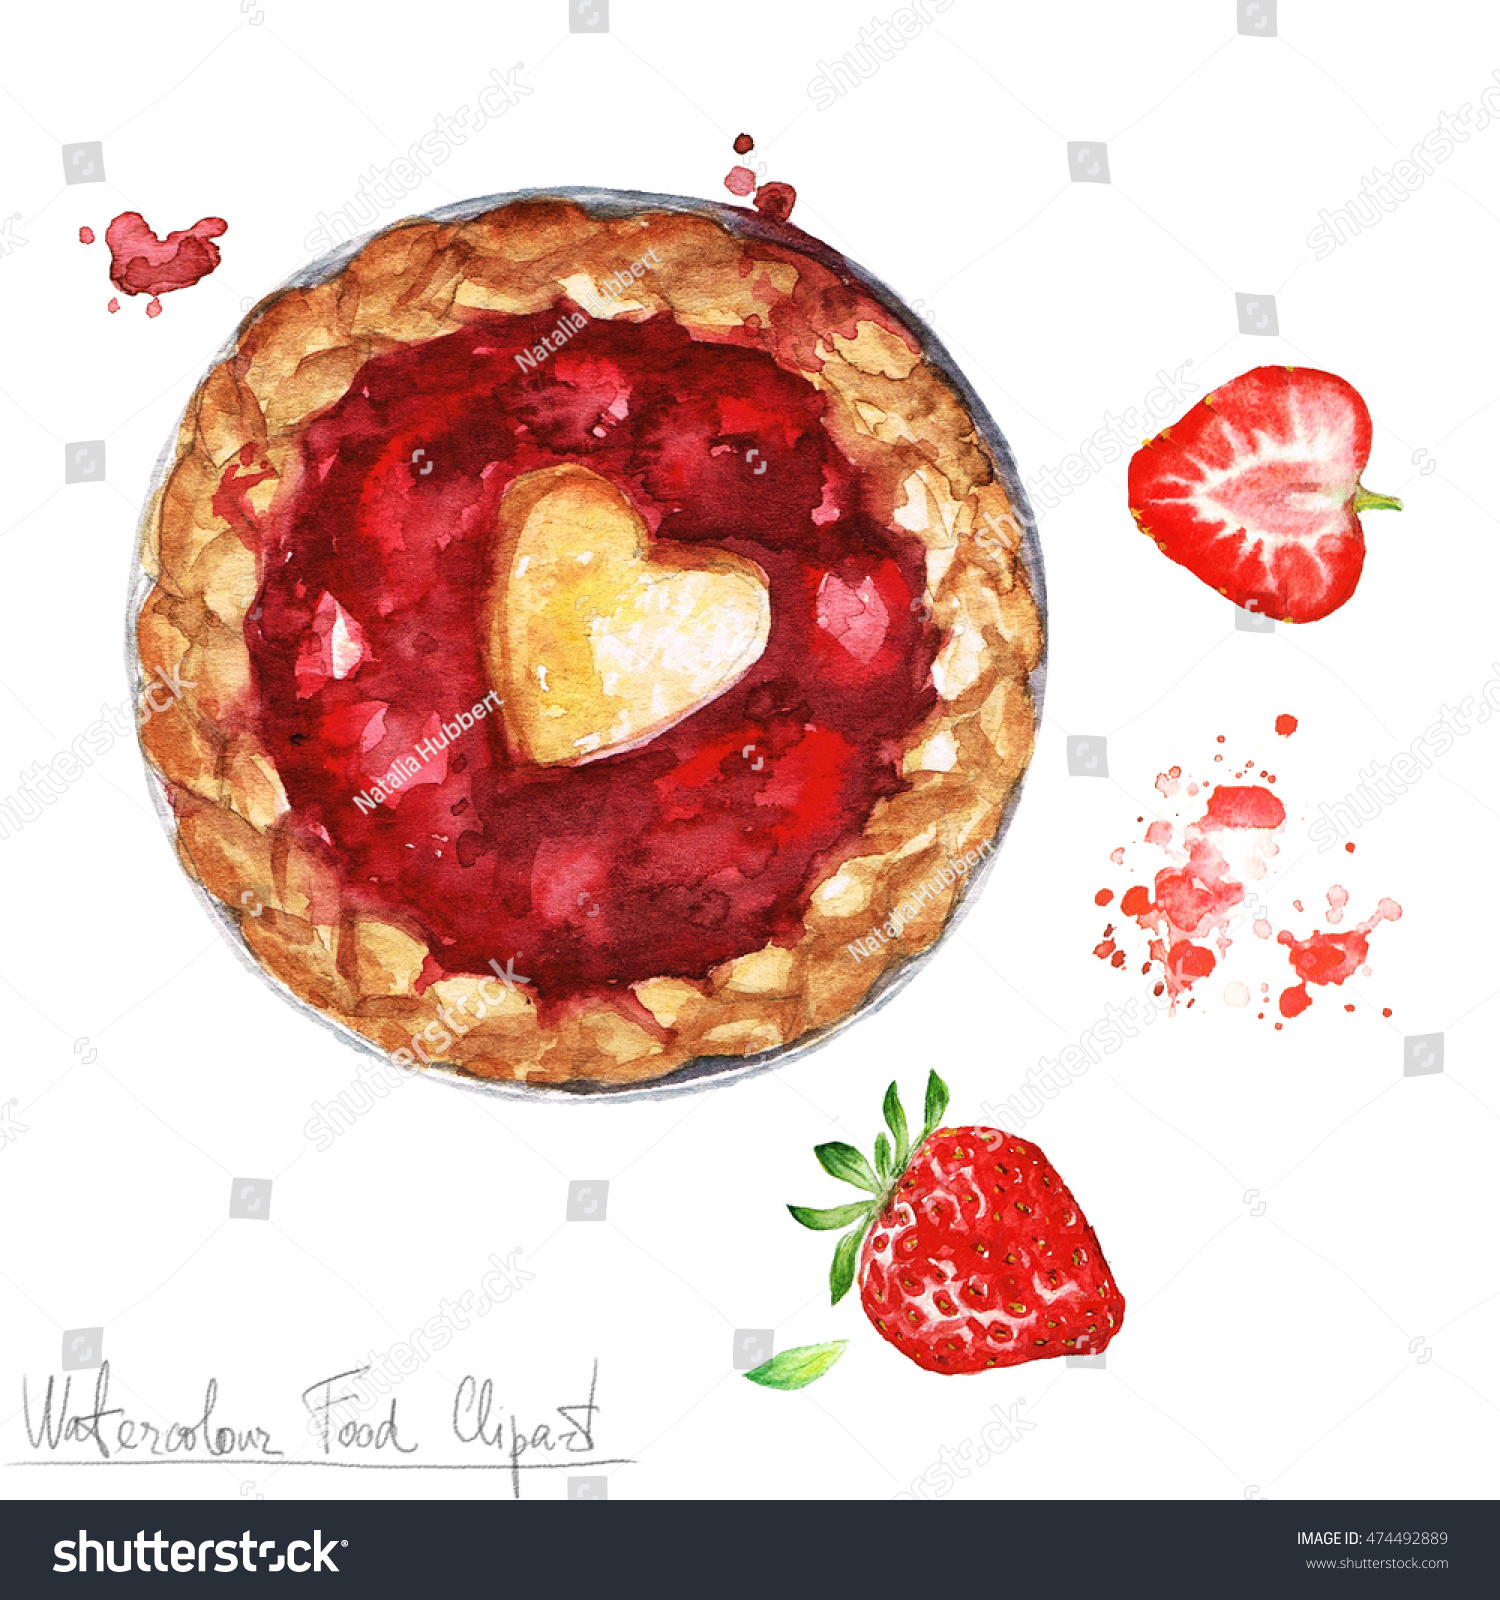 hight resolution of watercolor food clipart strawberry pie